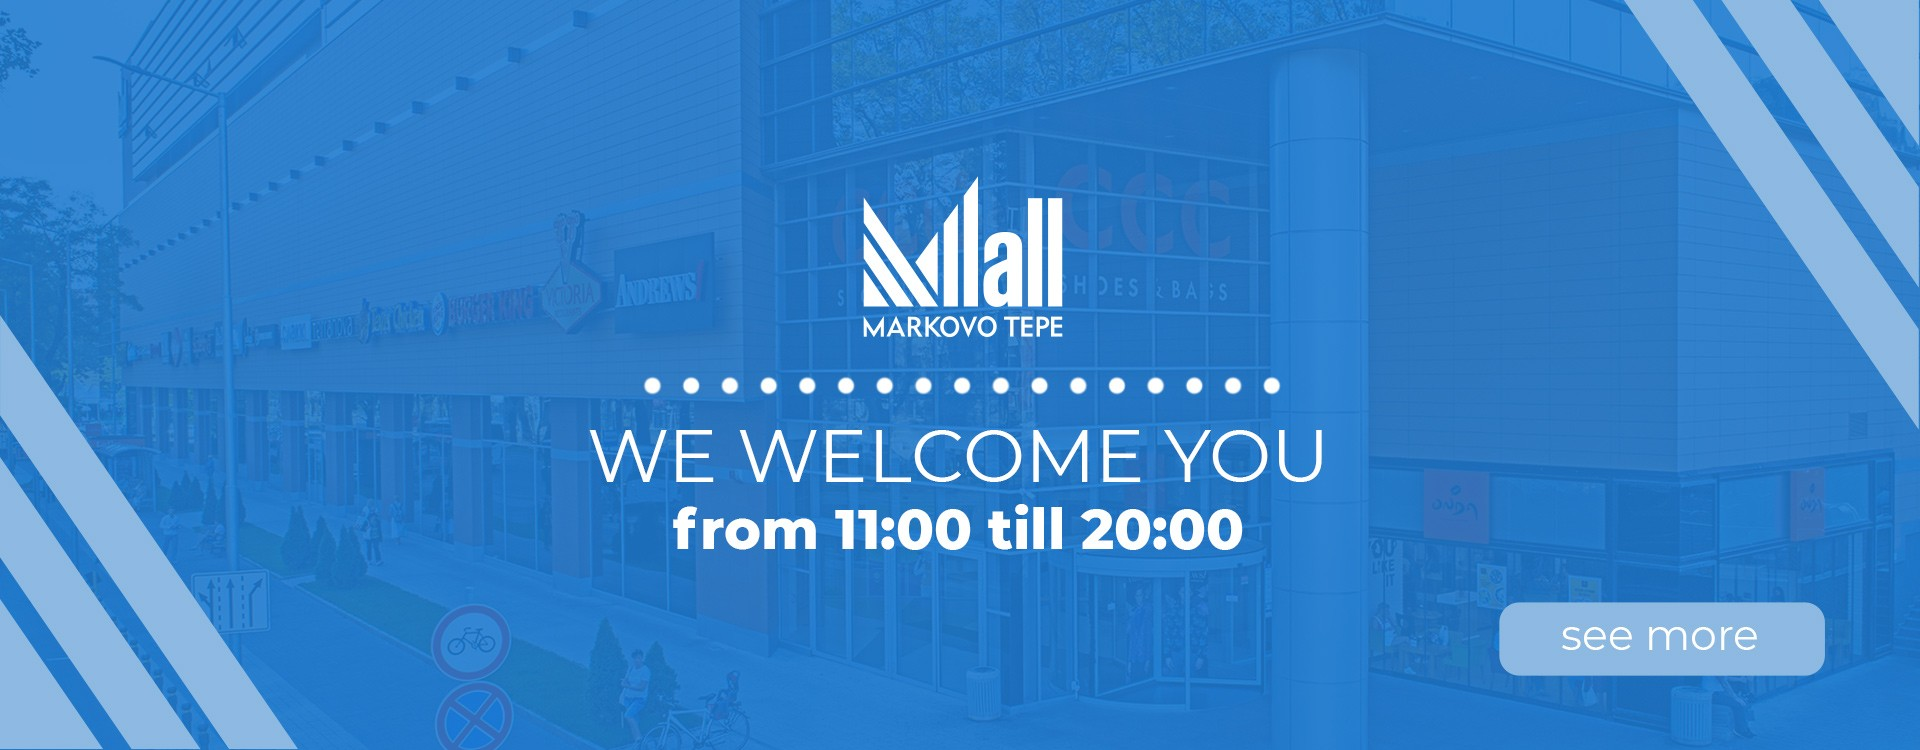 We welcome you from 11:00 untill 20:00